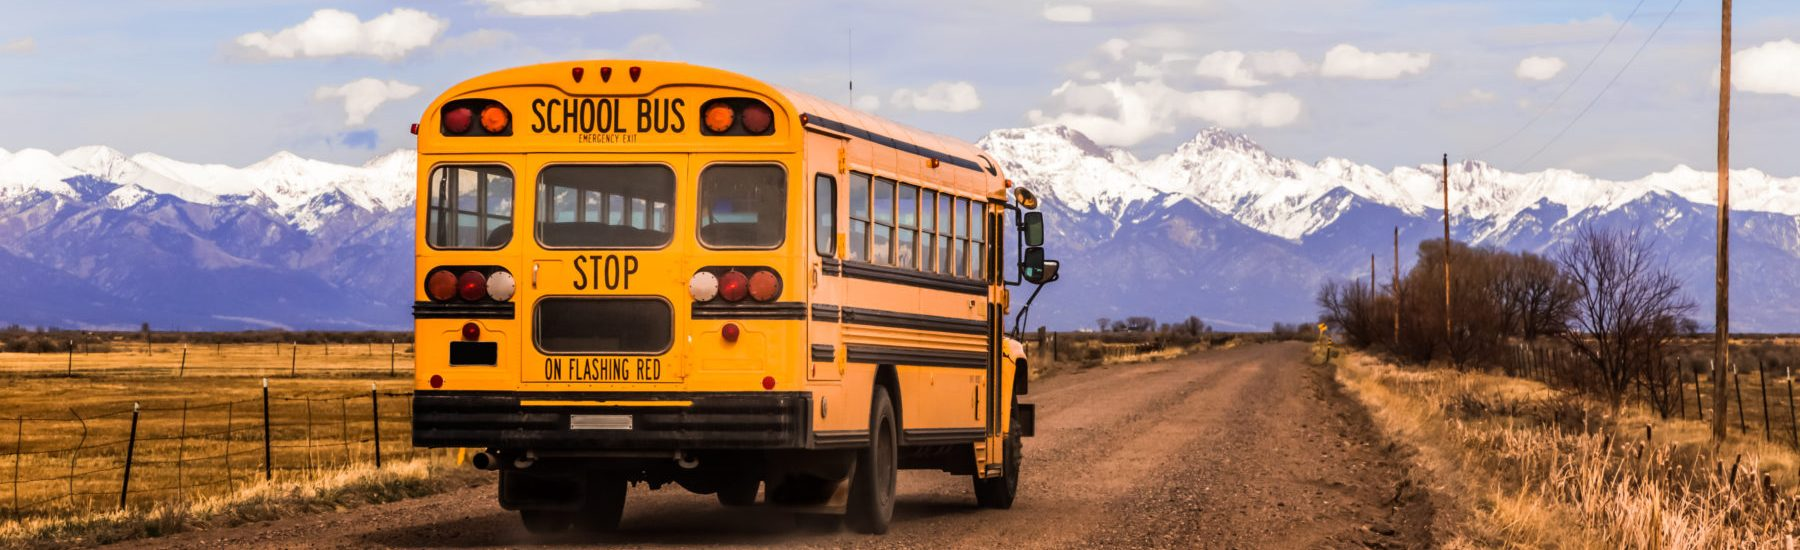 Yellow school bus on a country road, with snow-covered mountains in the background.